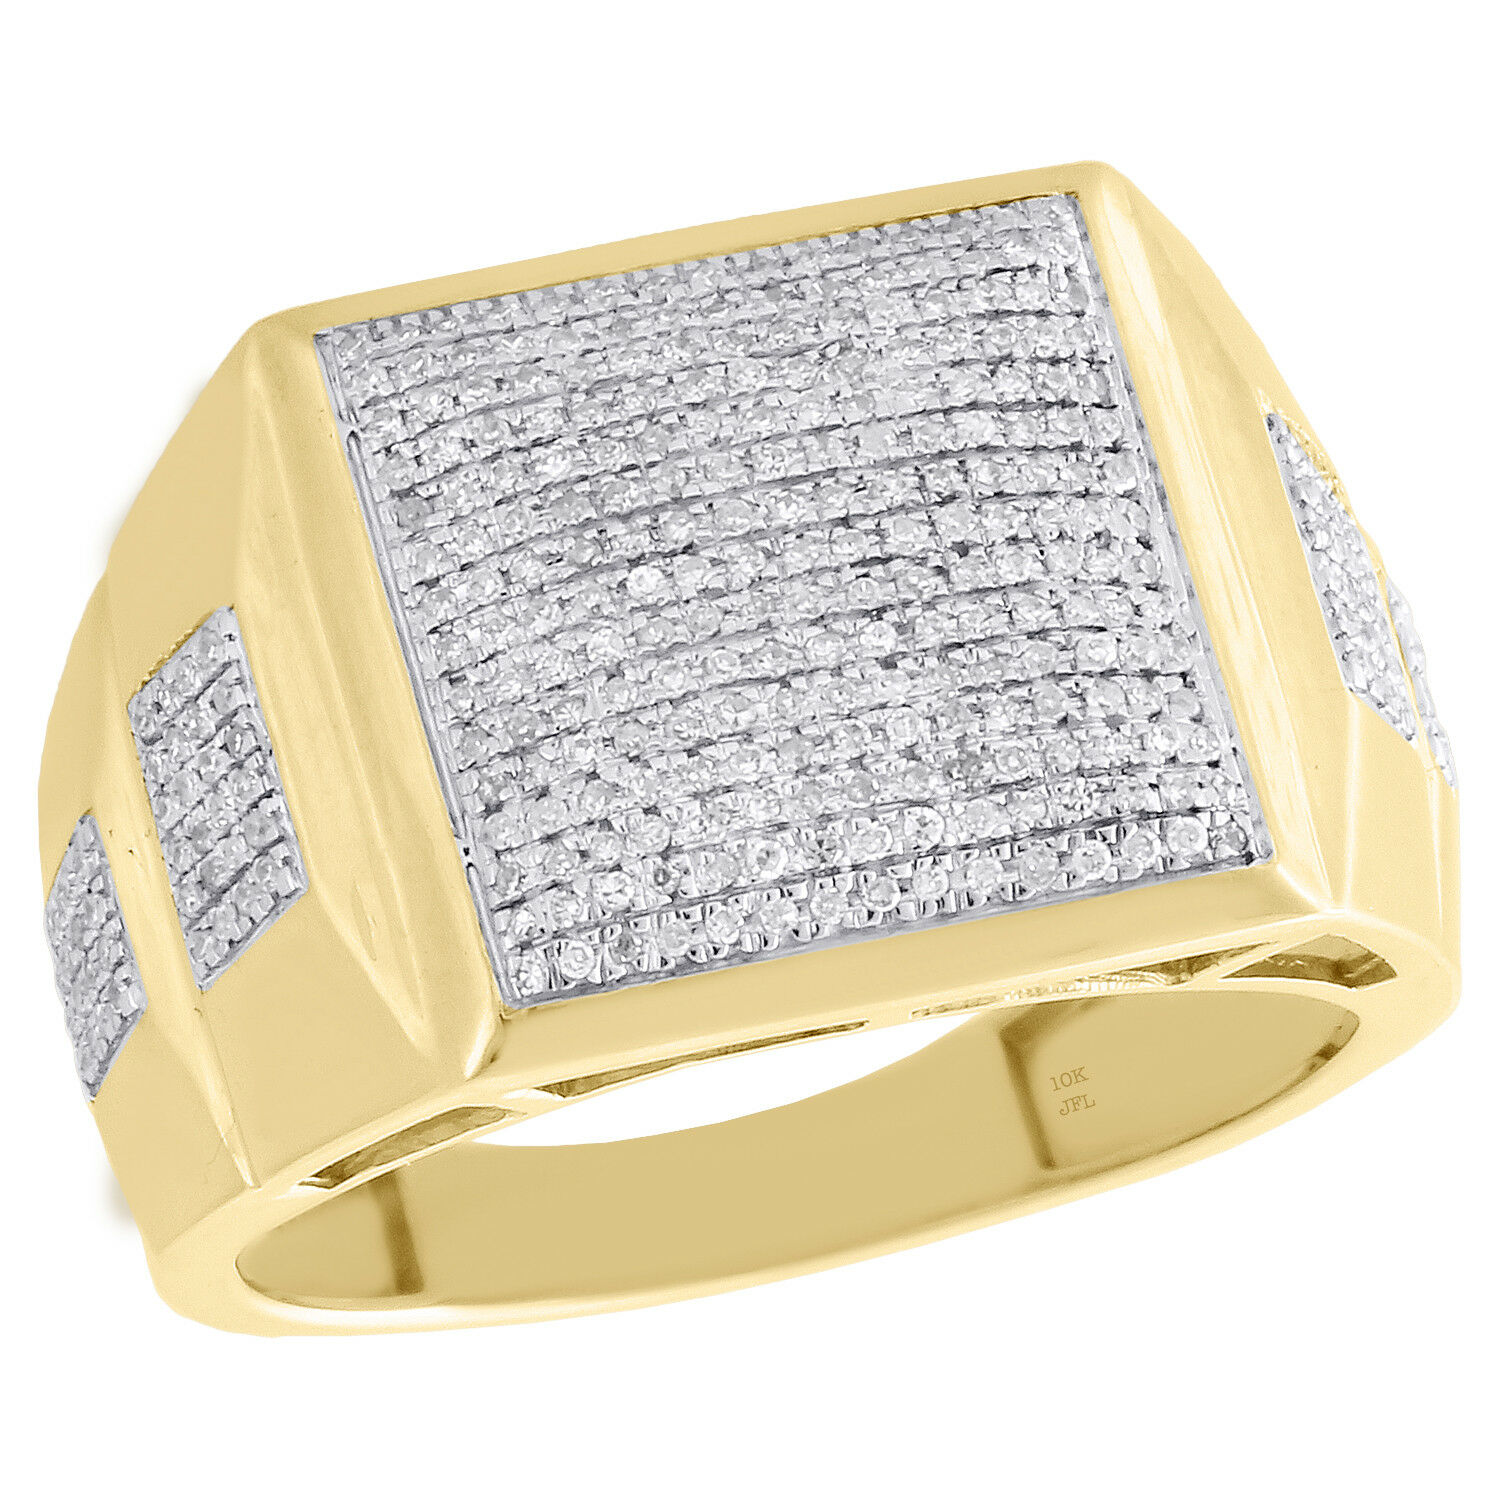 10K Yellow gold Diamond Dome Cluster Square Step Shank Mens Pinky Ring 0.44 CT.